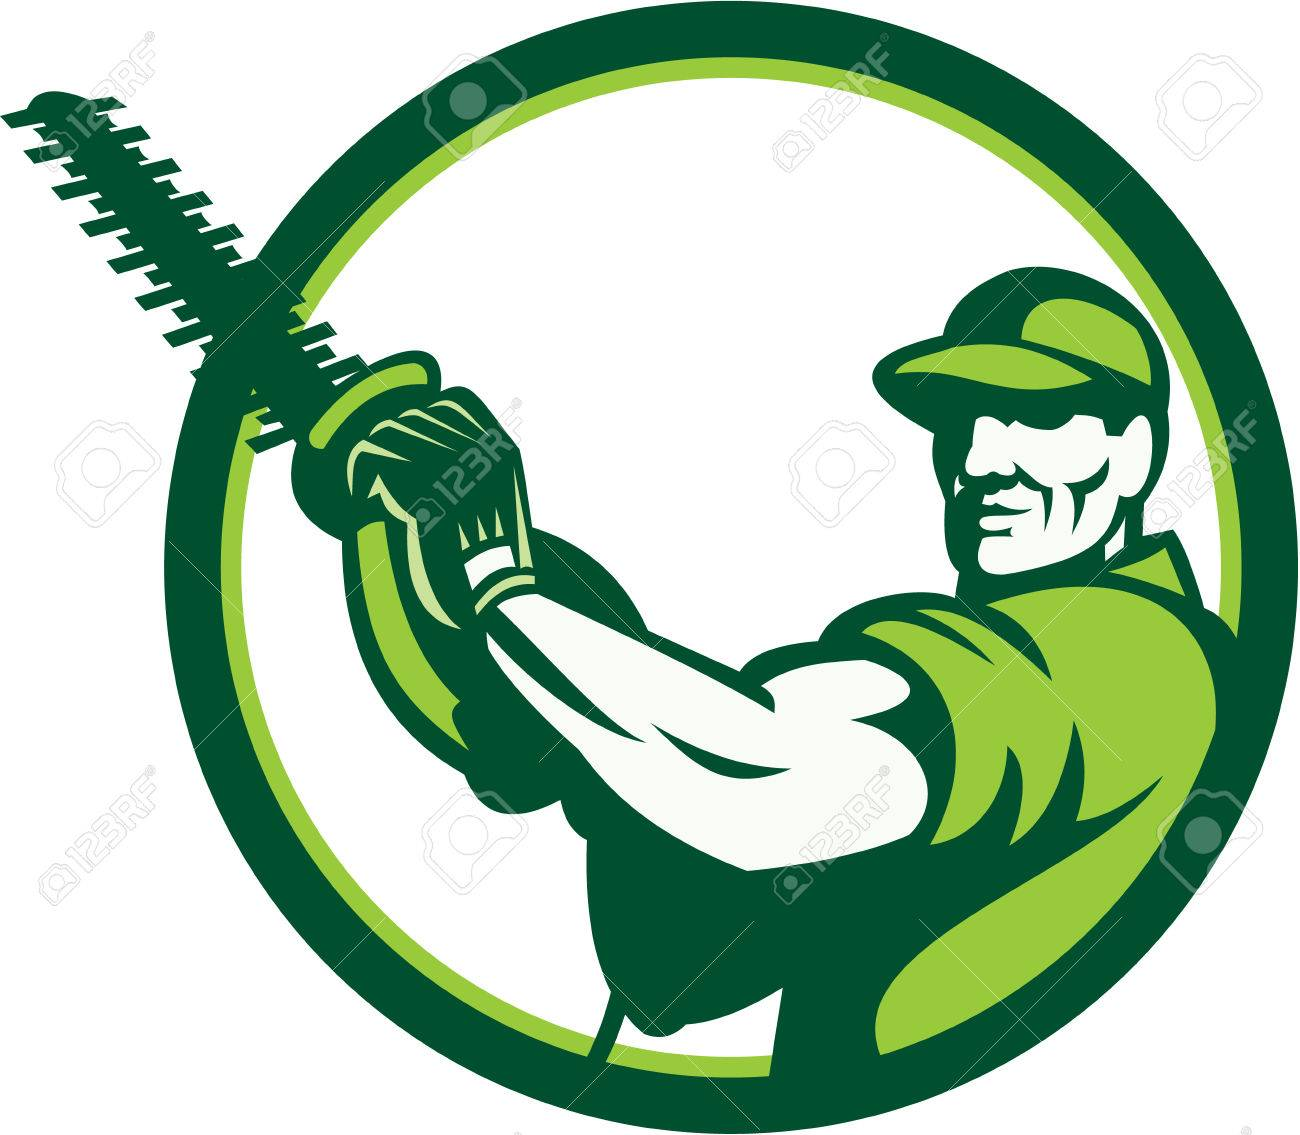 Illustration of a tree surgeon arborist gardener tradesman worker holding a hedge trimmer facing front set inside circle done in retro style on isolated white background. Stock Vector - 26131675